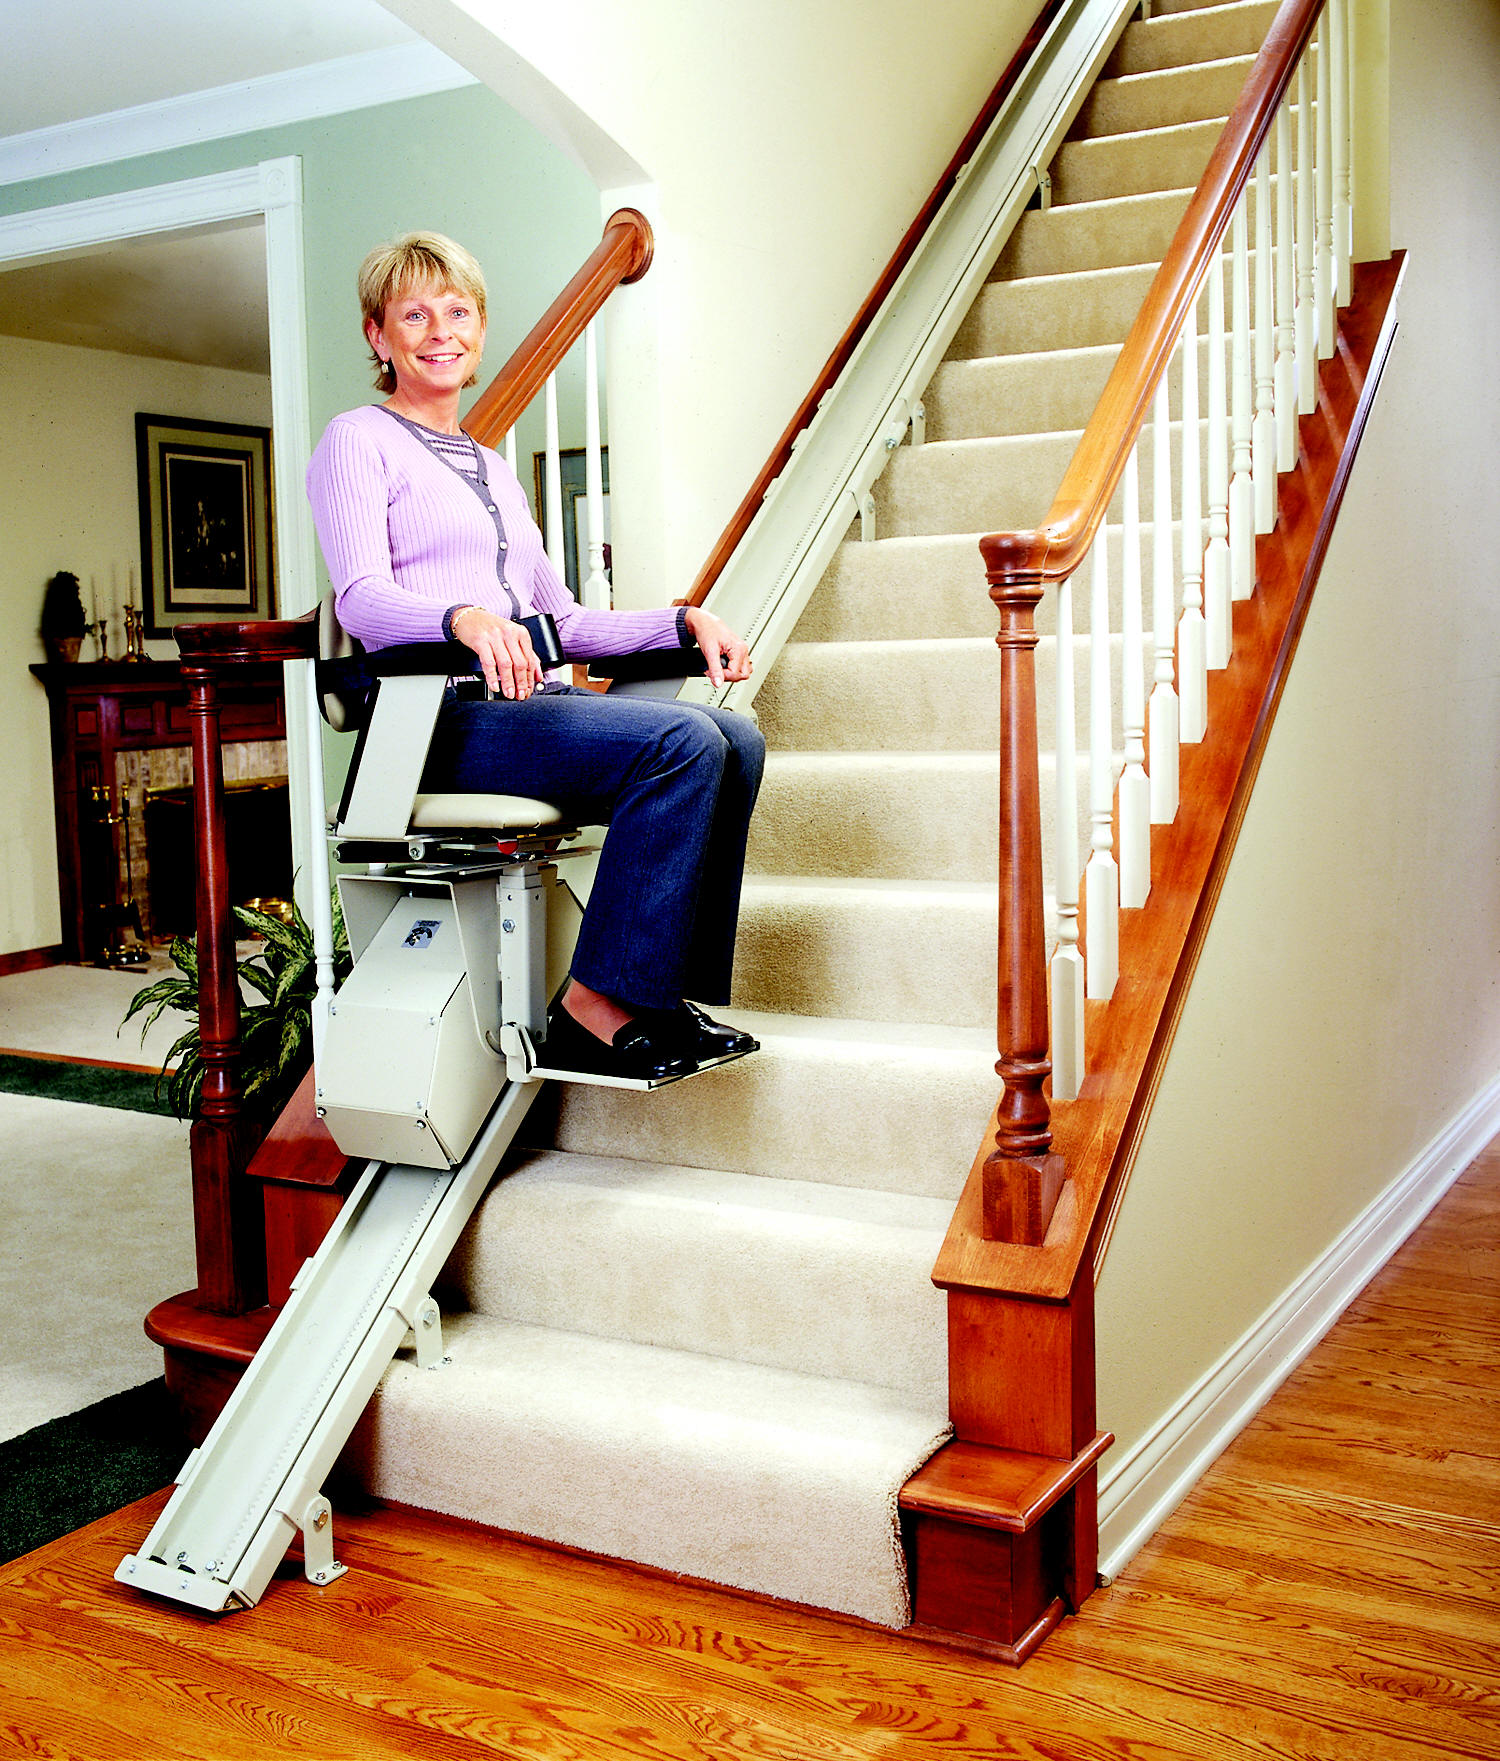 Review stair lift electric stairlift sre 1550 stair lift for Motorized stair chair lift